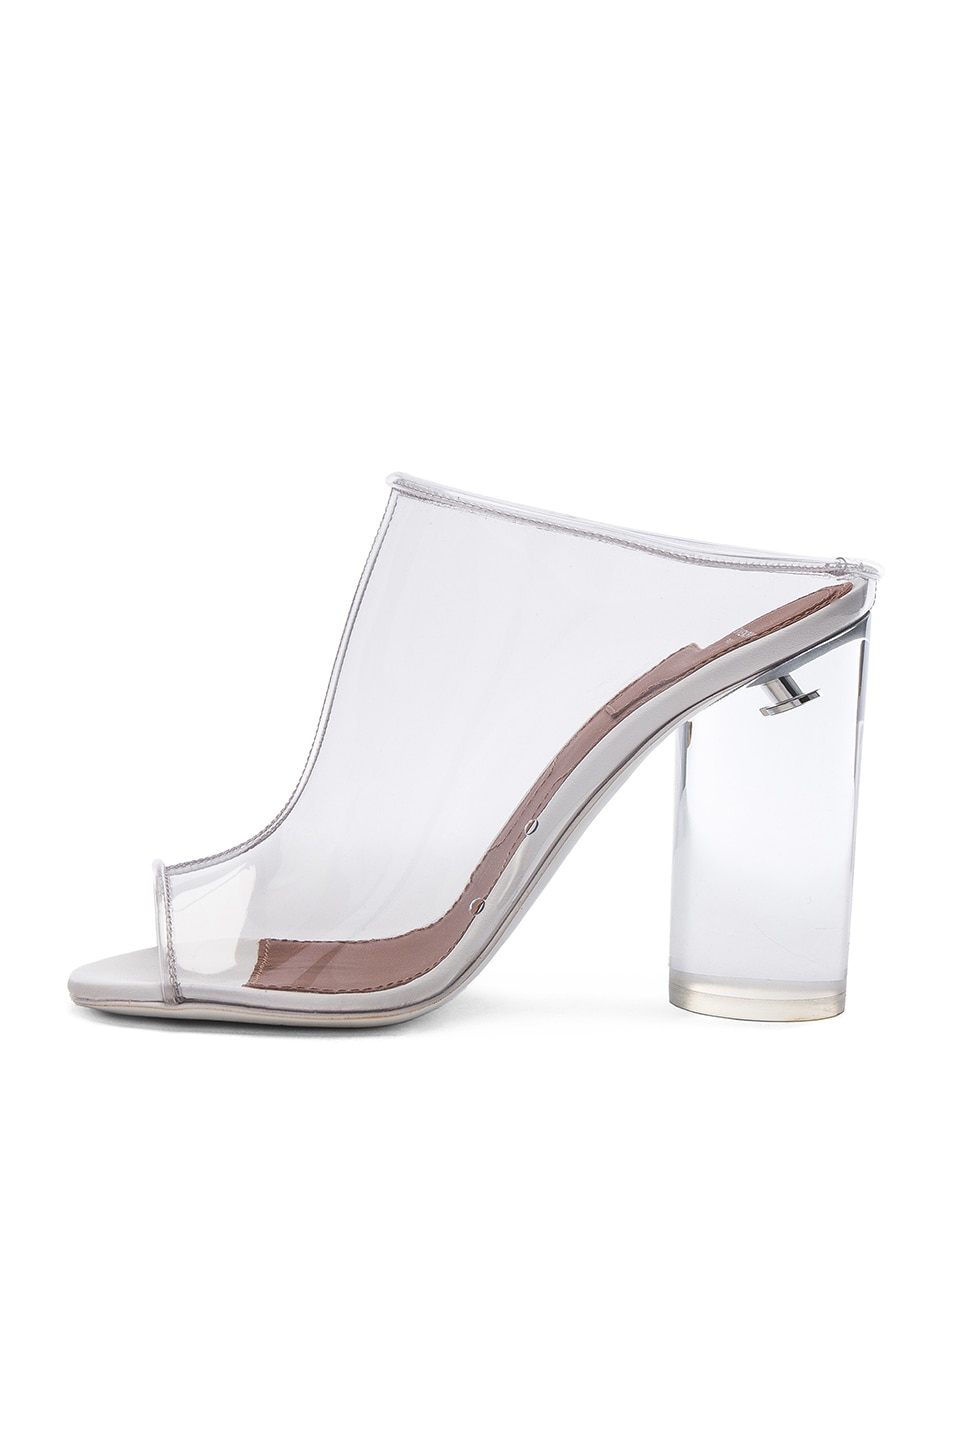 0ac9d2e7e79 Image 5 of Givenchy PVC Mules in Clear